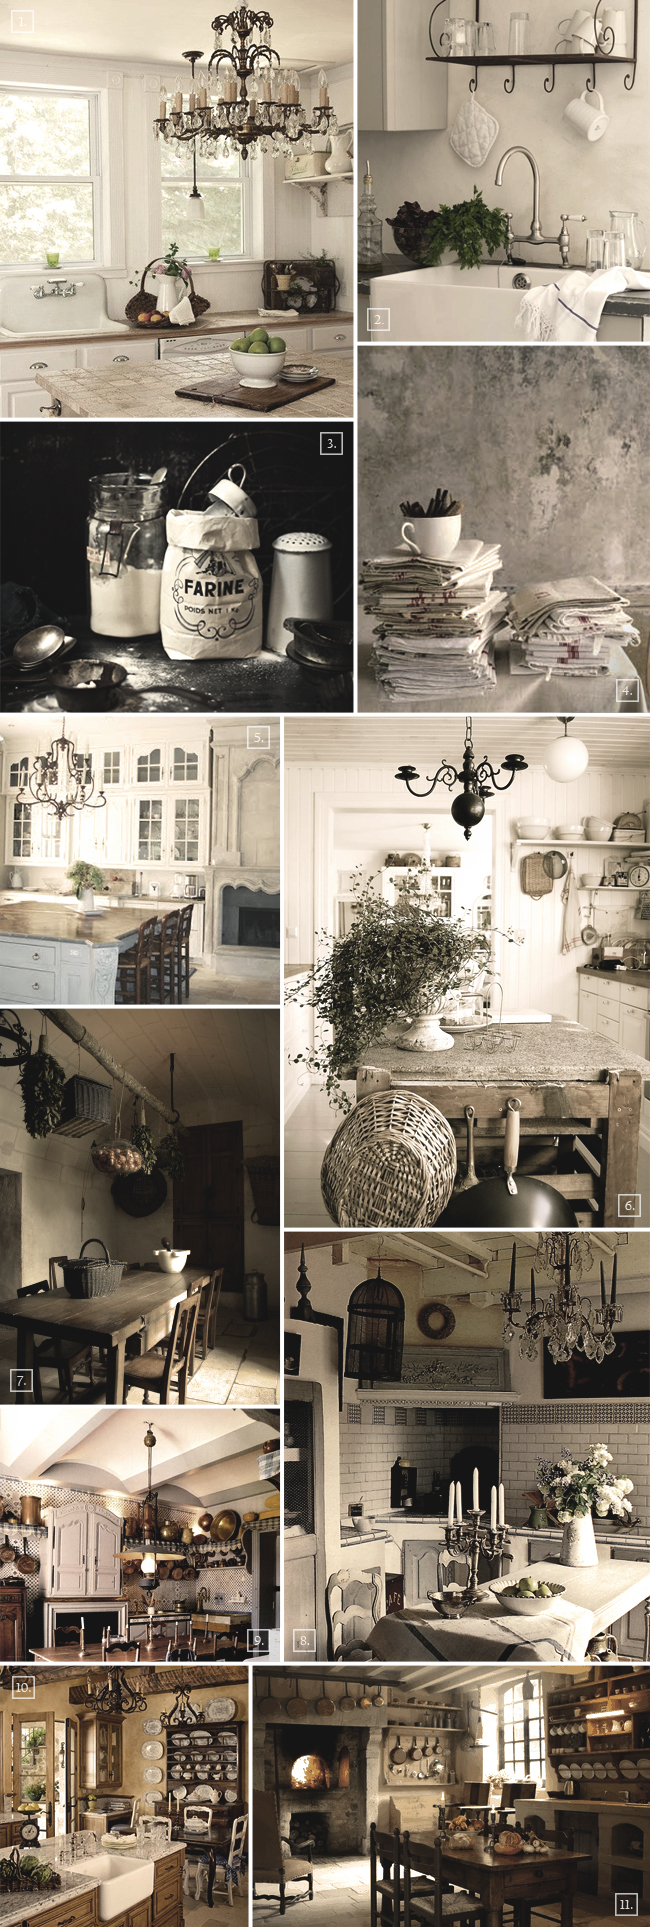 country kitchen designs along with more modern french kitchen decor